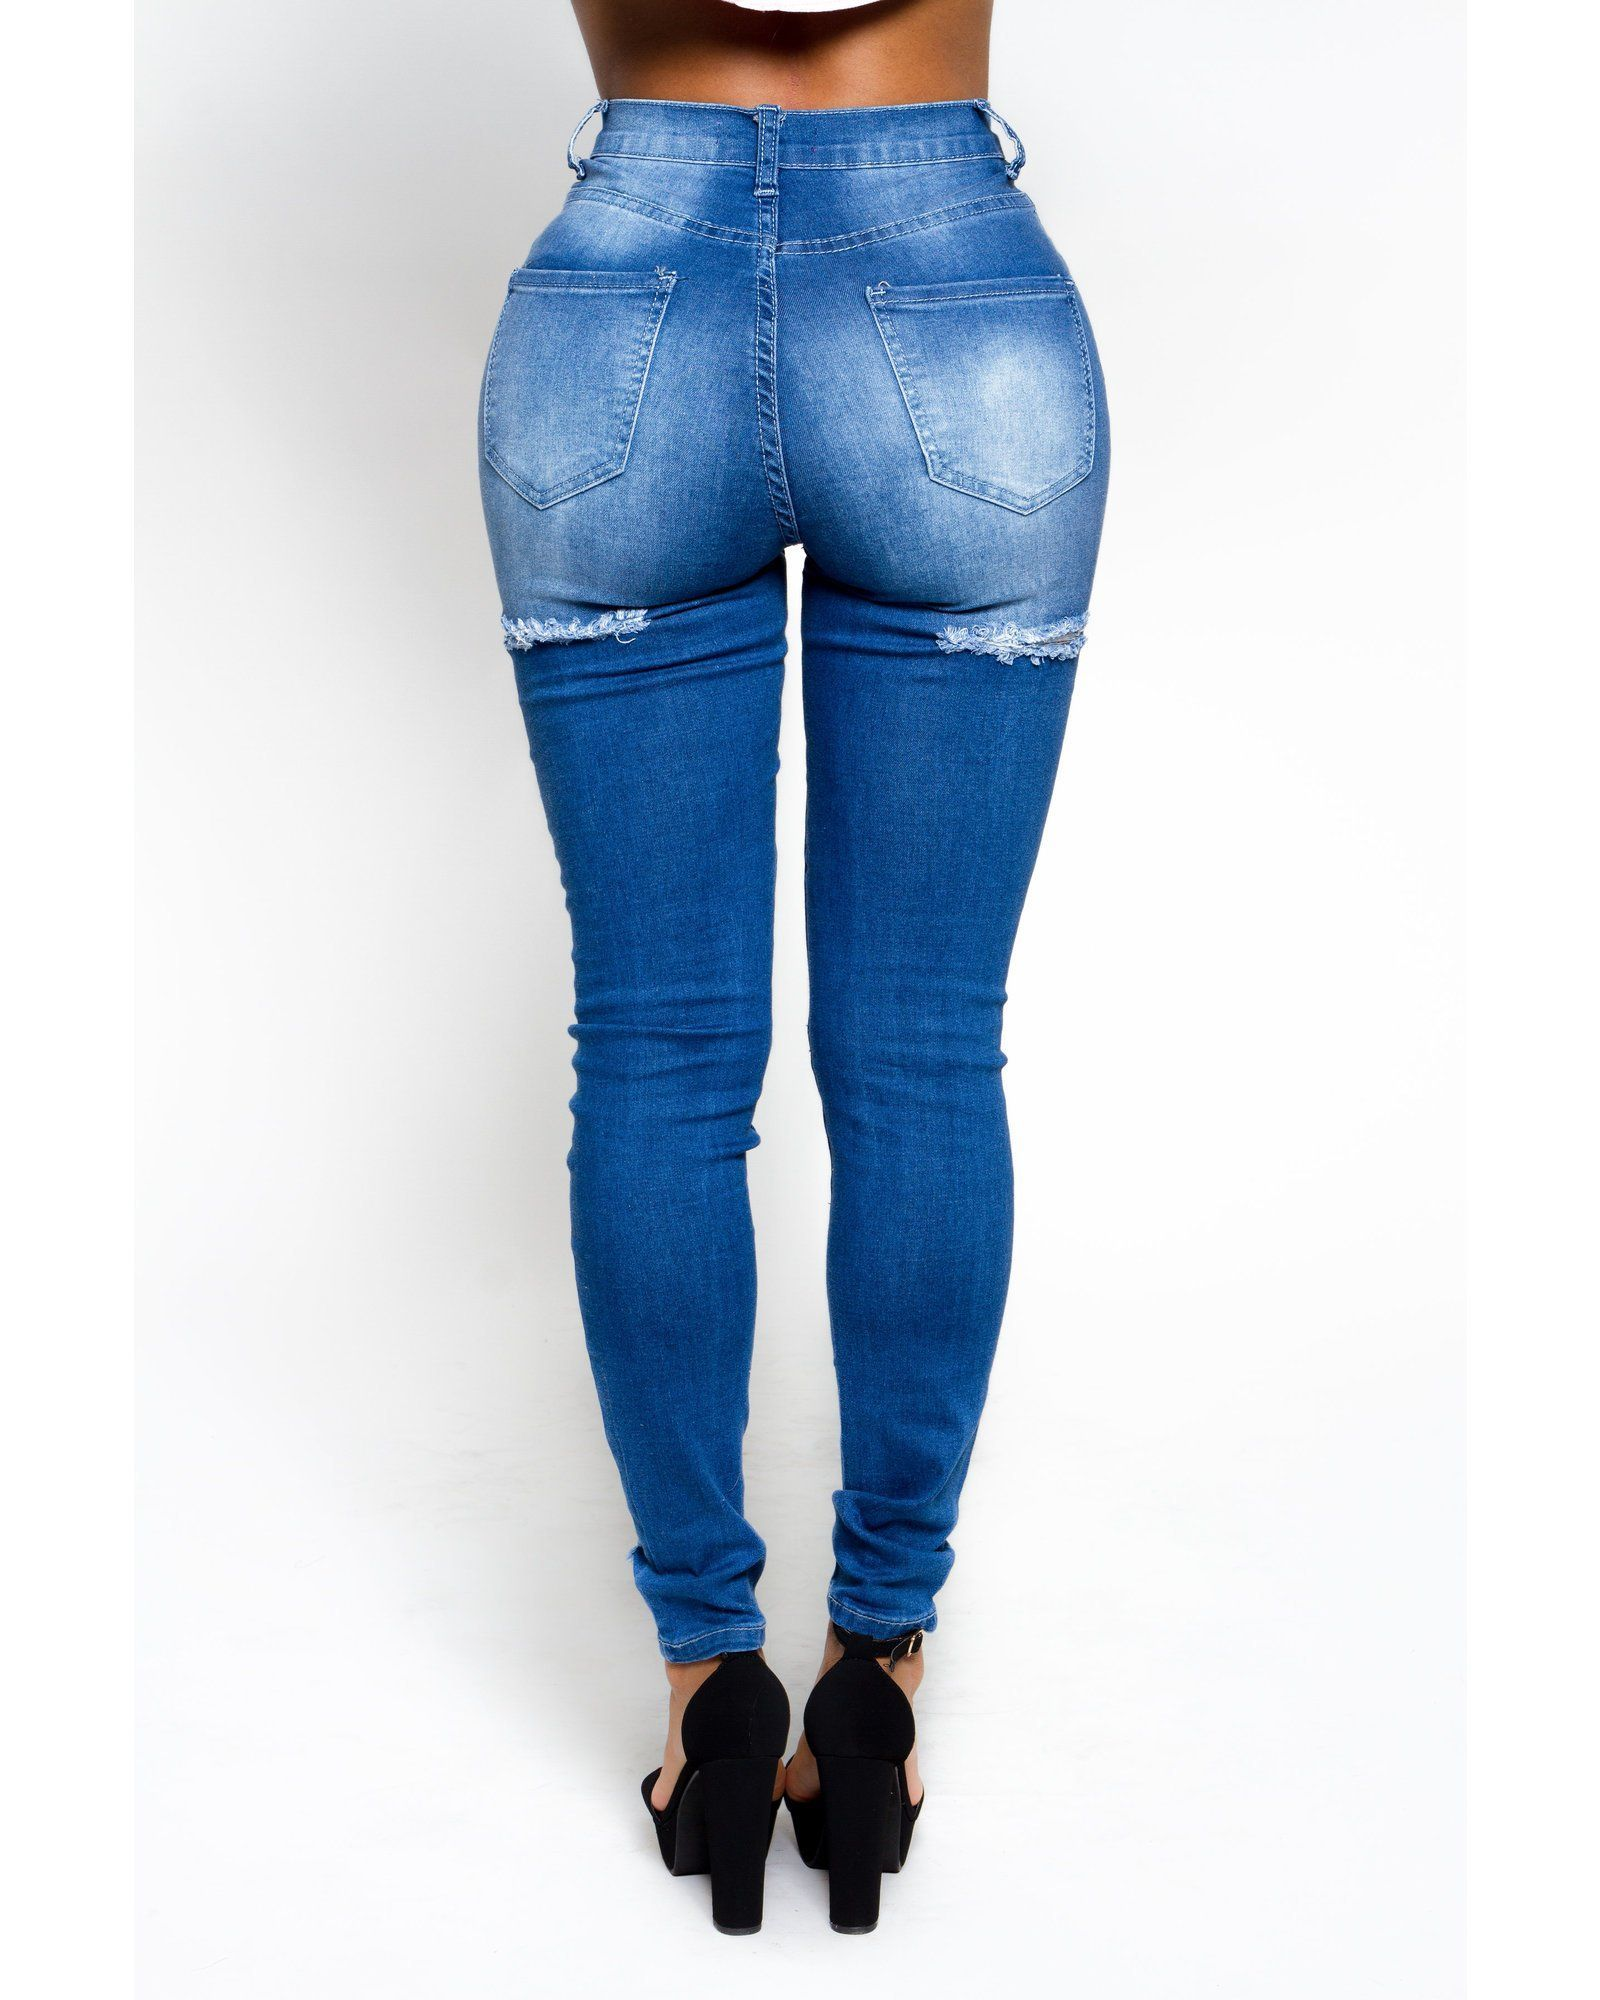 14fcc2755b Stay ahead of the trend in these super cool ripped jeans - Skinny fit  through hips and thighs - Shredded rips throughout front - Bum rip detail -  Five ...